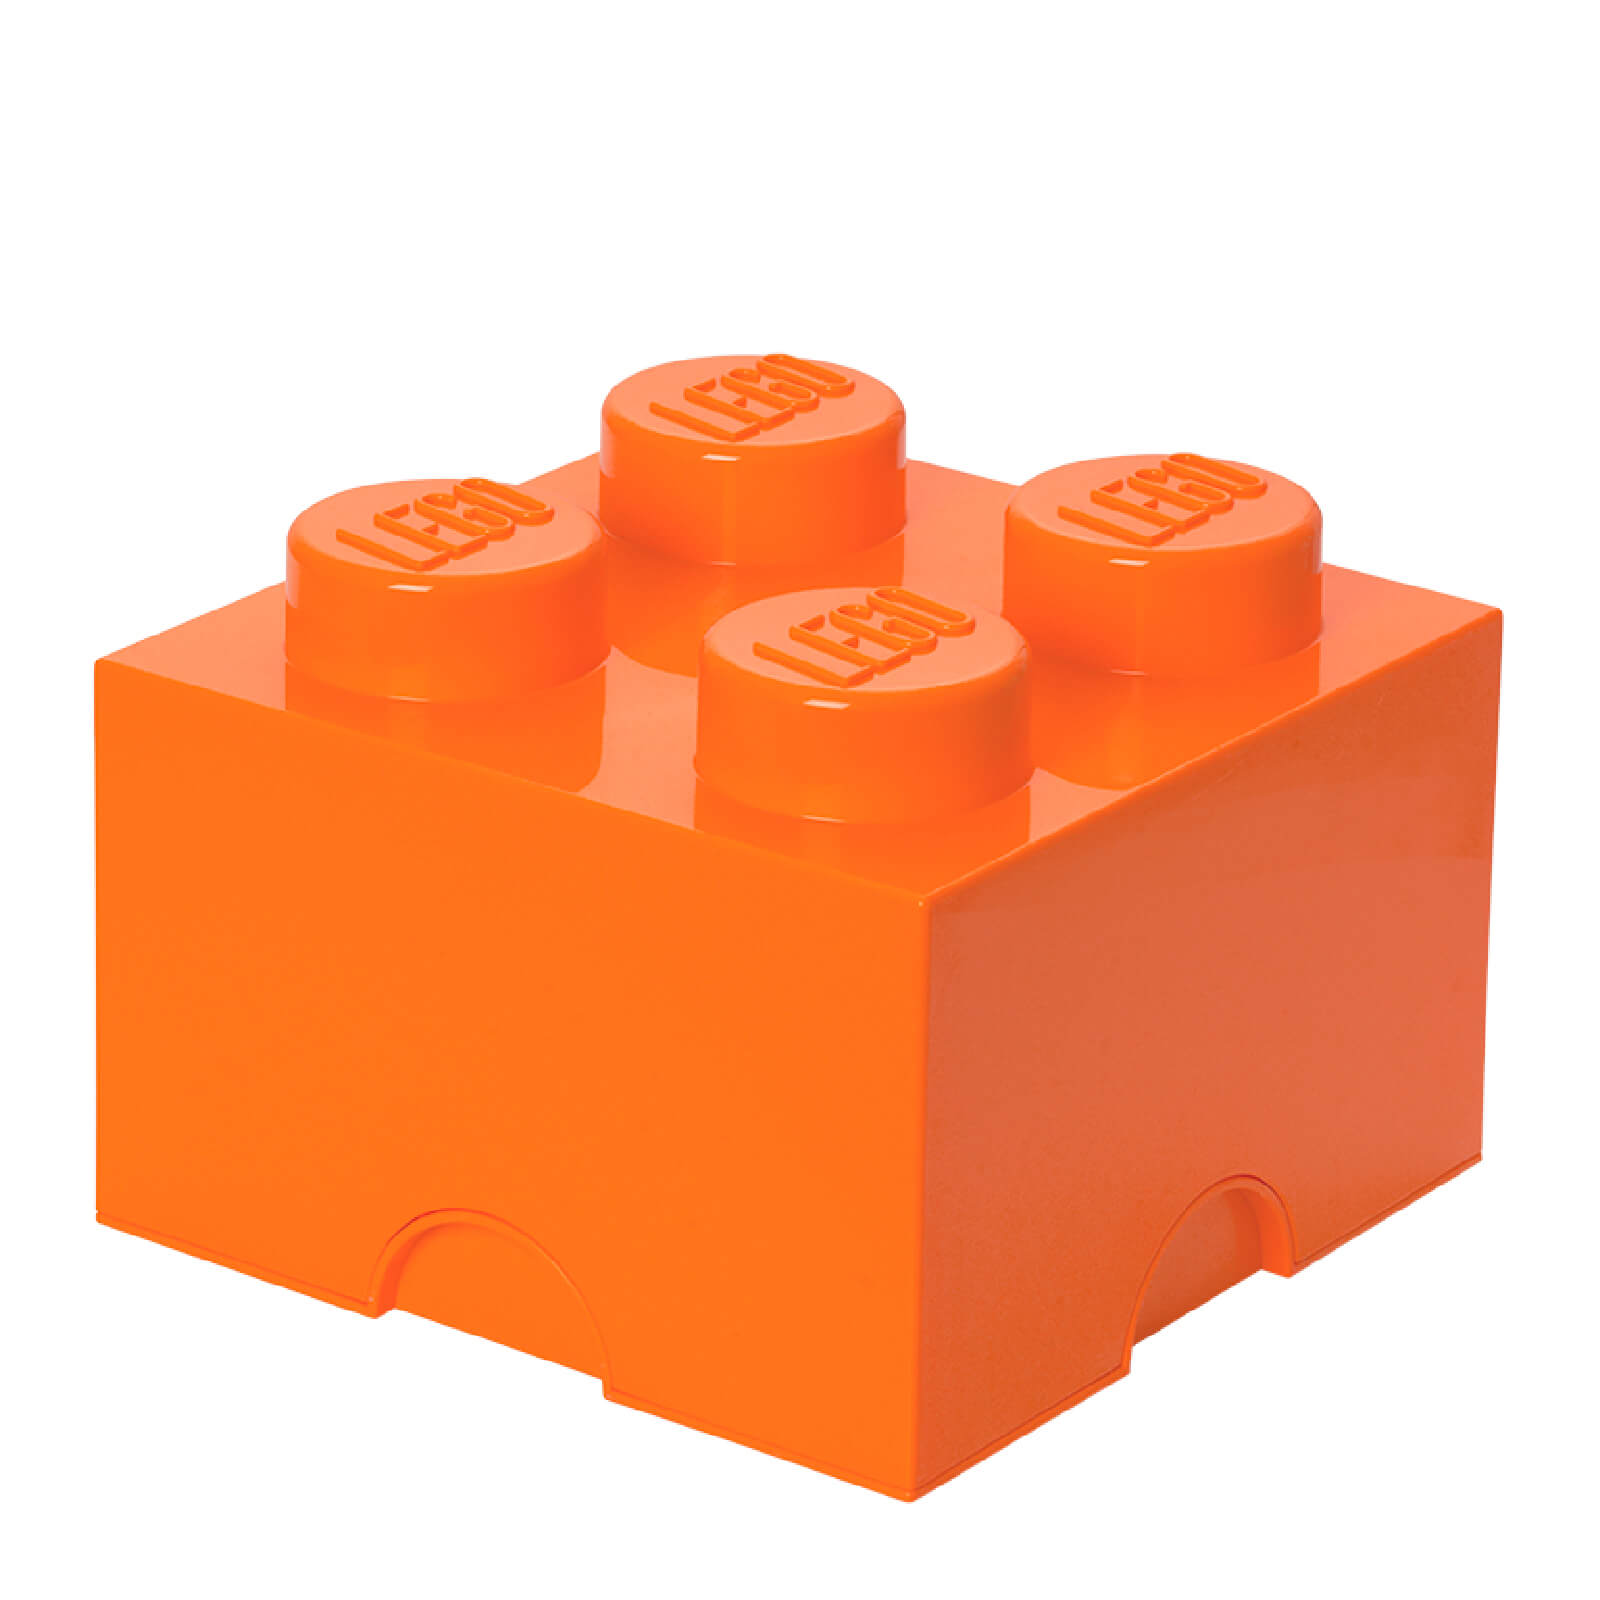 LEGO Storage Brick 4 - Bright Orange